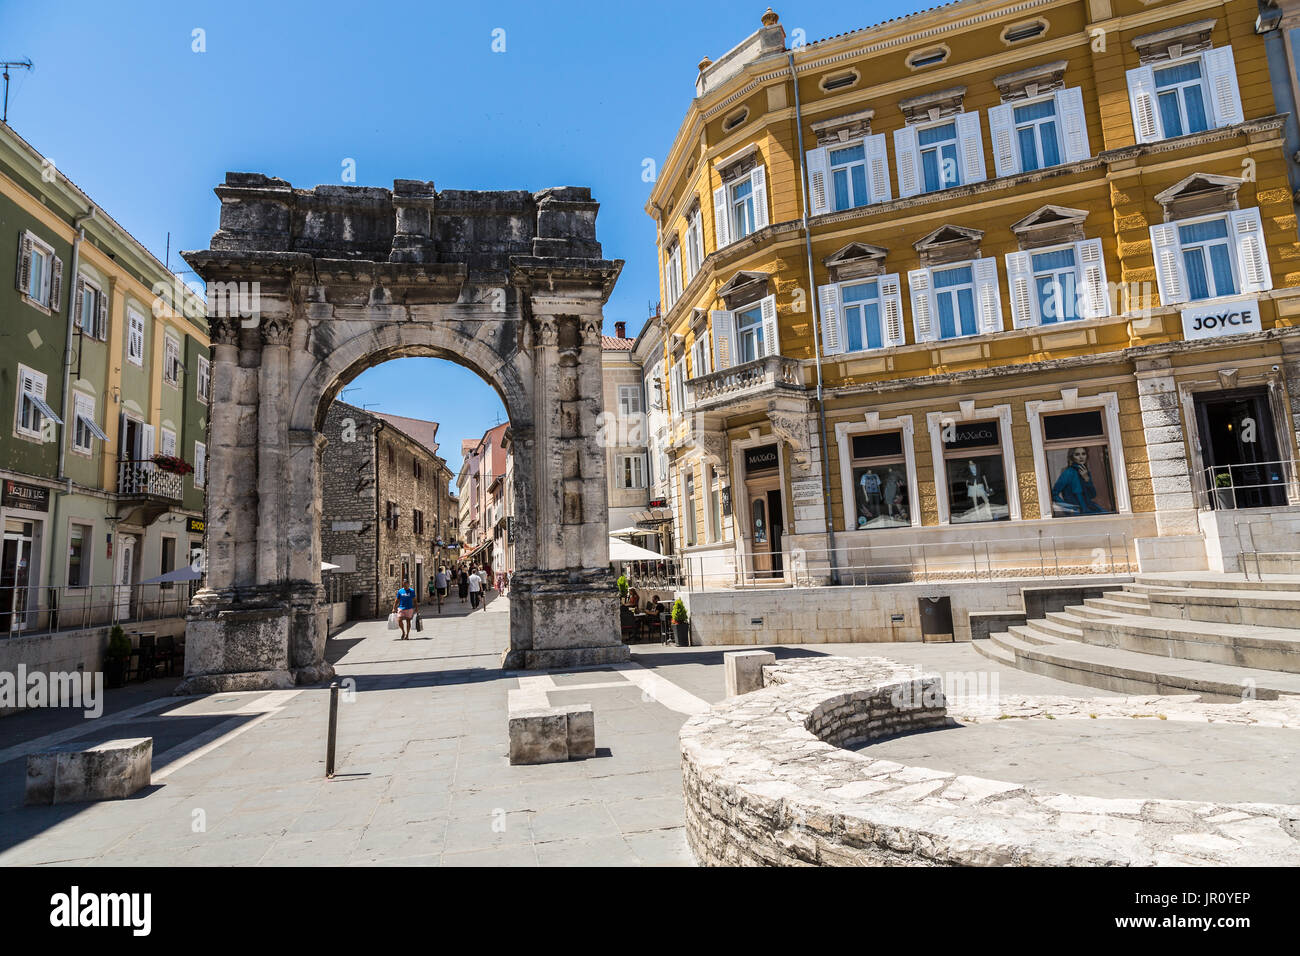 Pula, Croatia downtown architecture - Stock Image